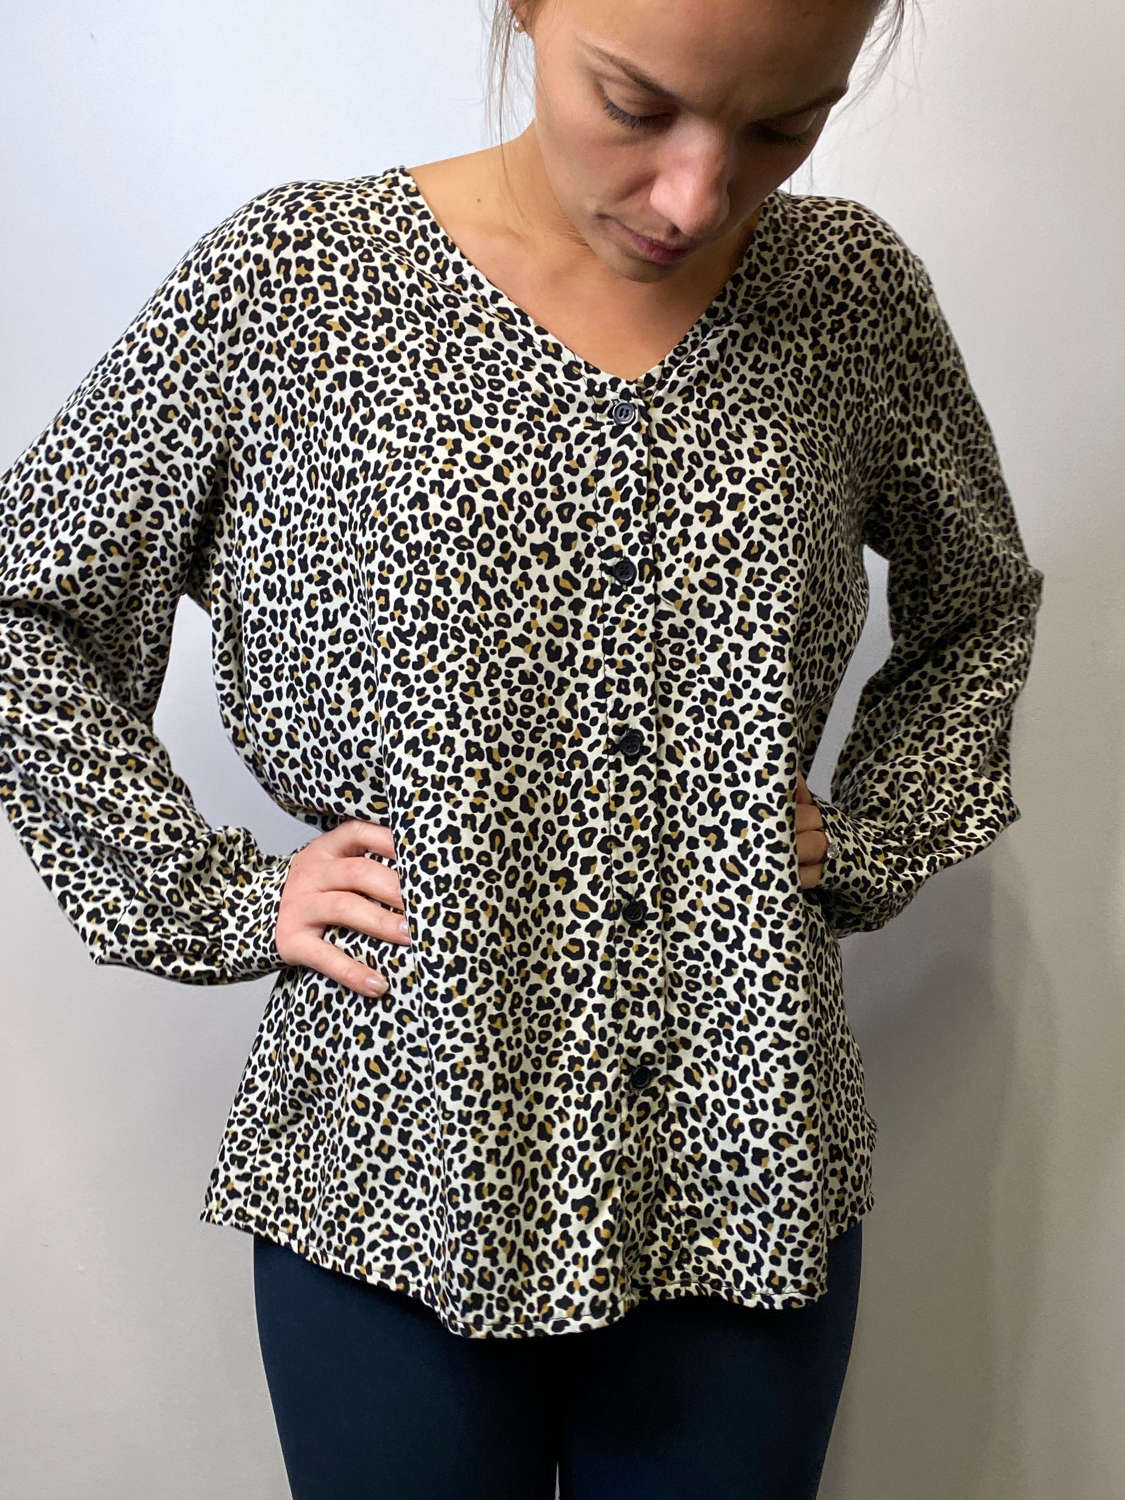 Animal print blouse - one size